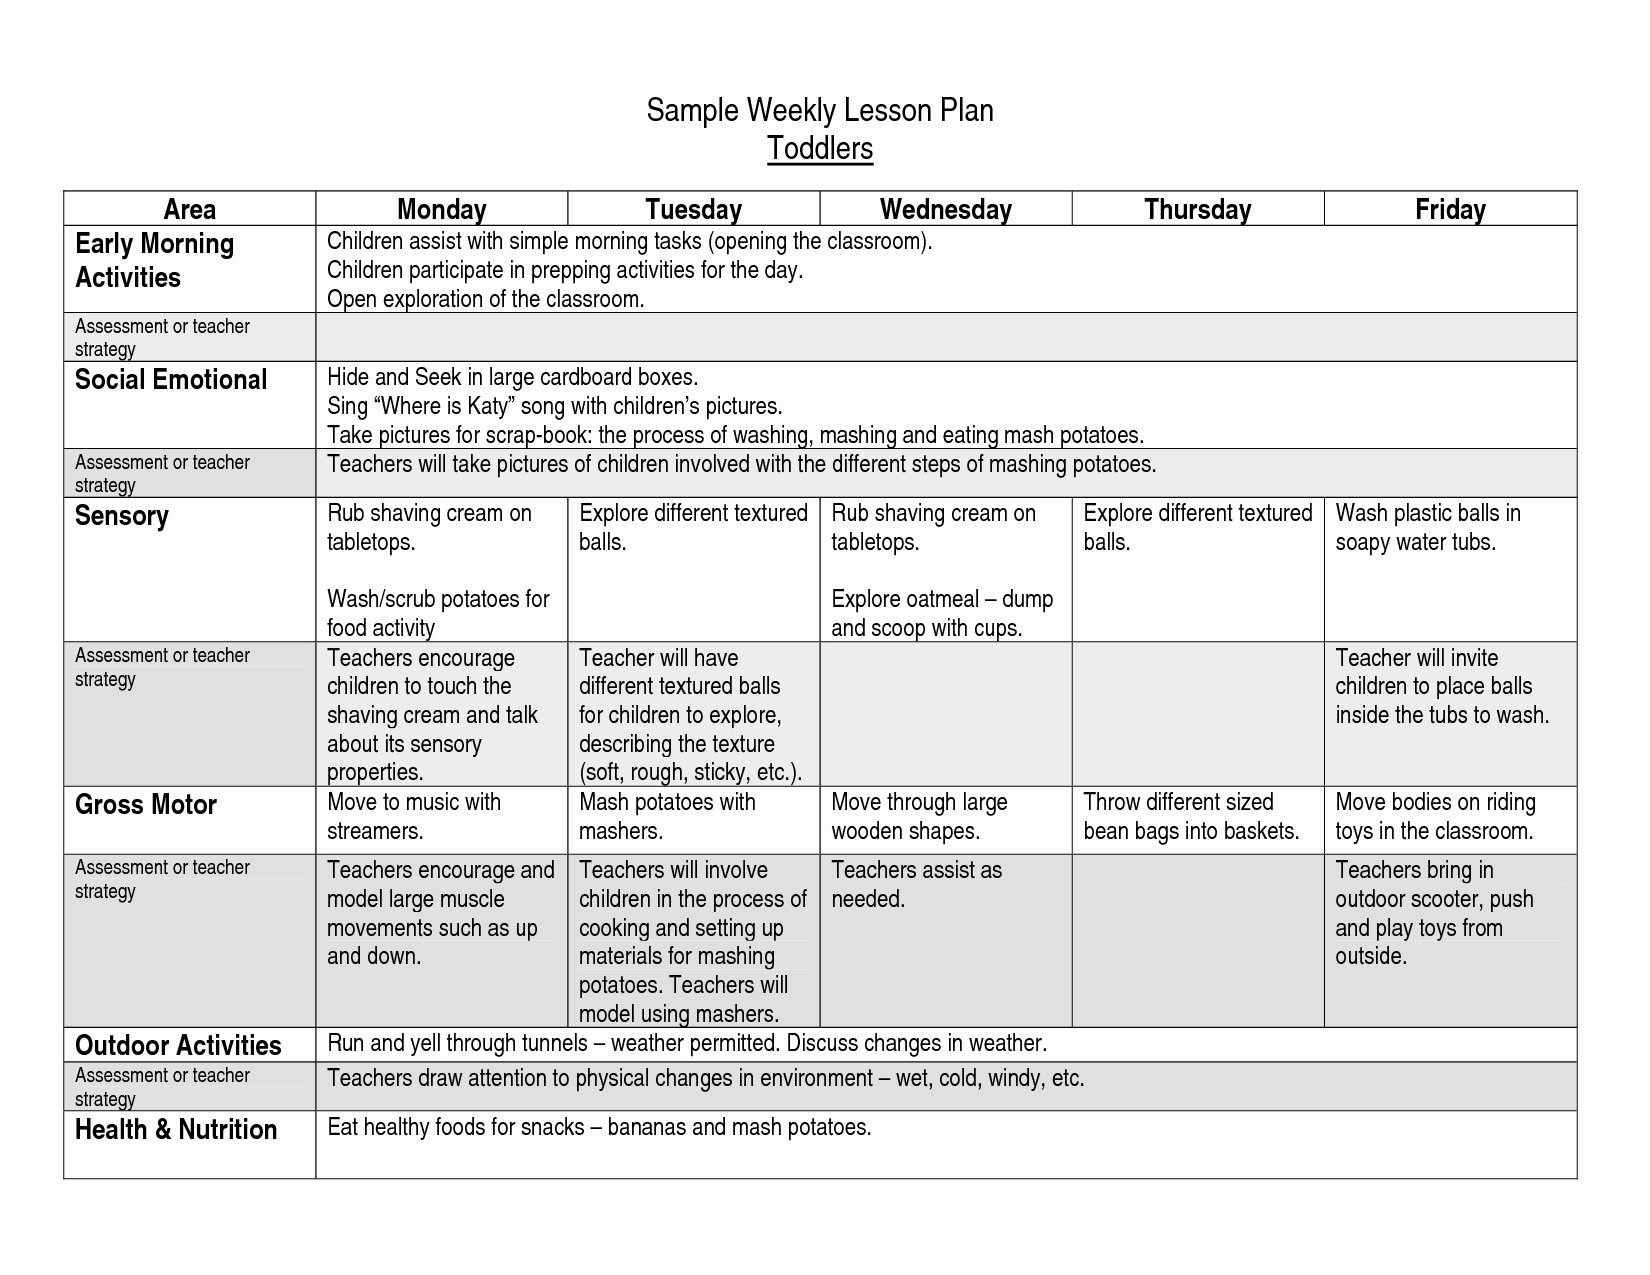 Lesson Plan Template for toddlers Best Of Download Free Weekly Lesson Plan Template Lots Of Free